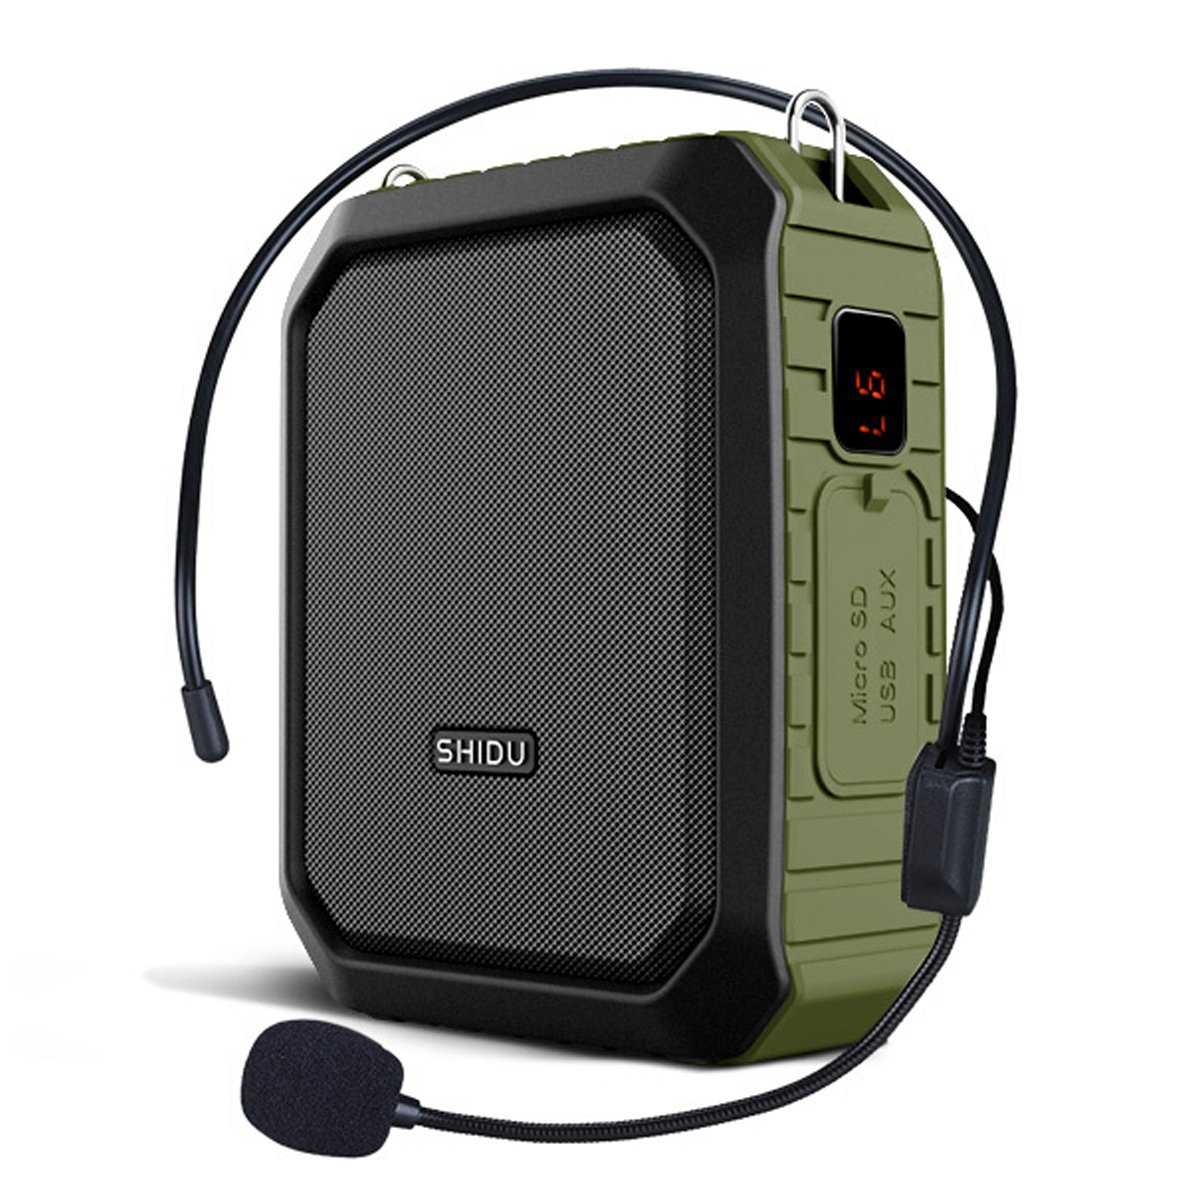 WinBridge Voice Amplifier with Wired Microphone Headset Megaphone Clip Amp Portable Microphone with Speaker Waterproof IPX5 for Outdoors Activities, Teaching, Meetings, Training etc